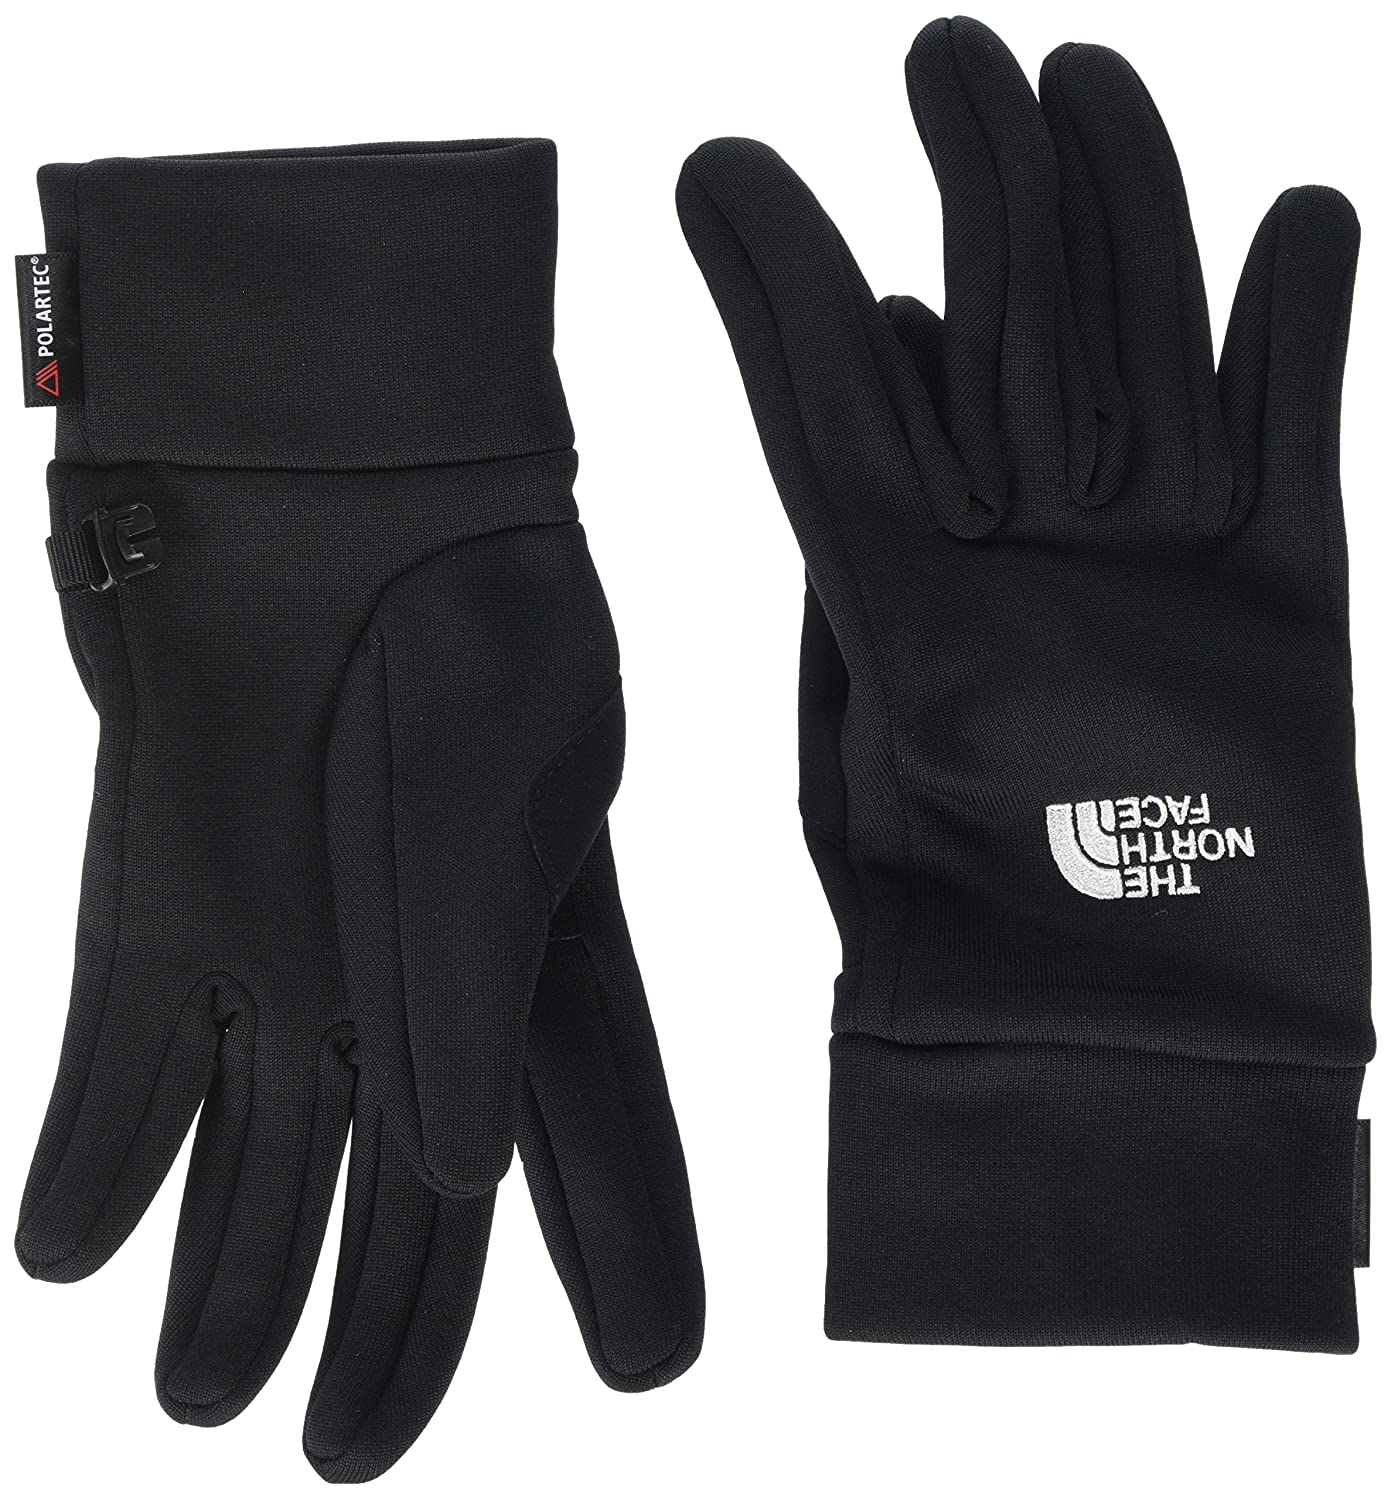 North Face Power Stretch Ski Gloves THE NORTH FACE The North Face Accessories AVDY